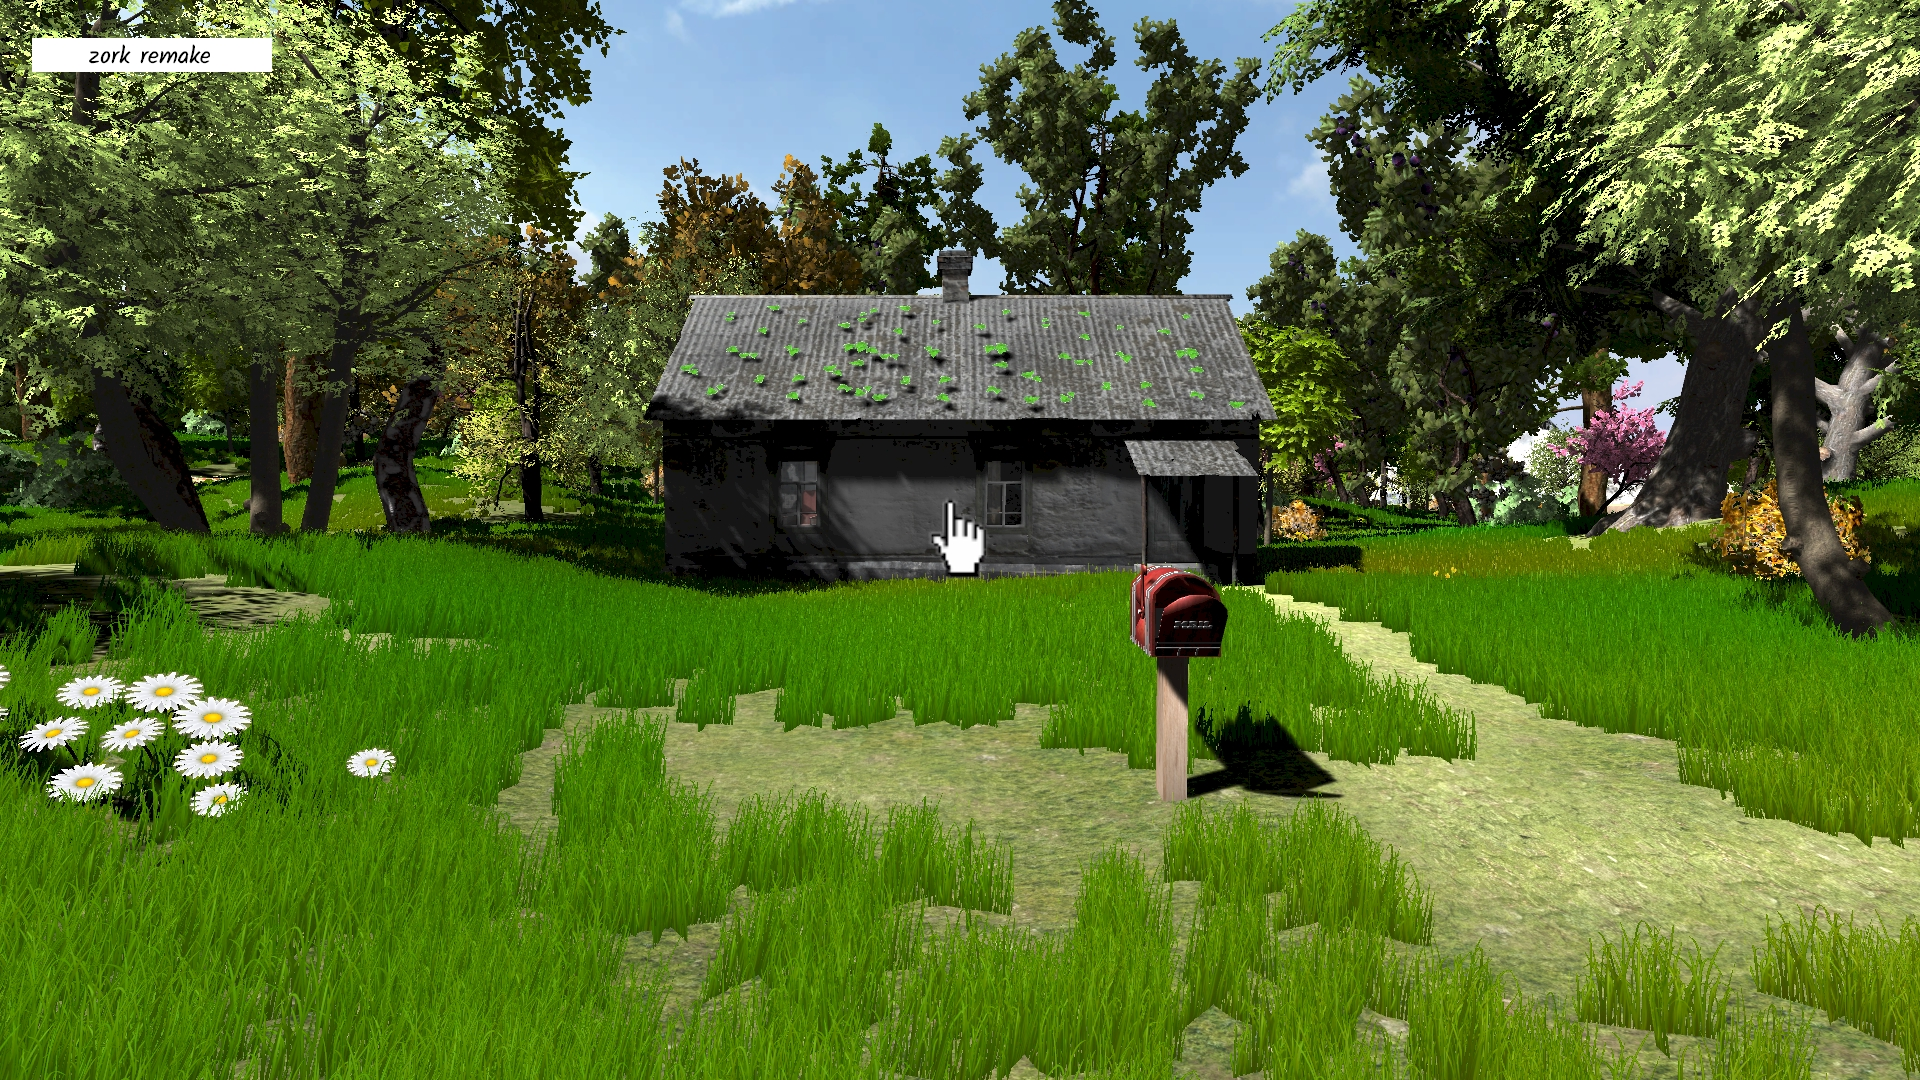 Zork Remake Free Download